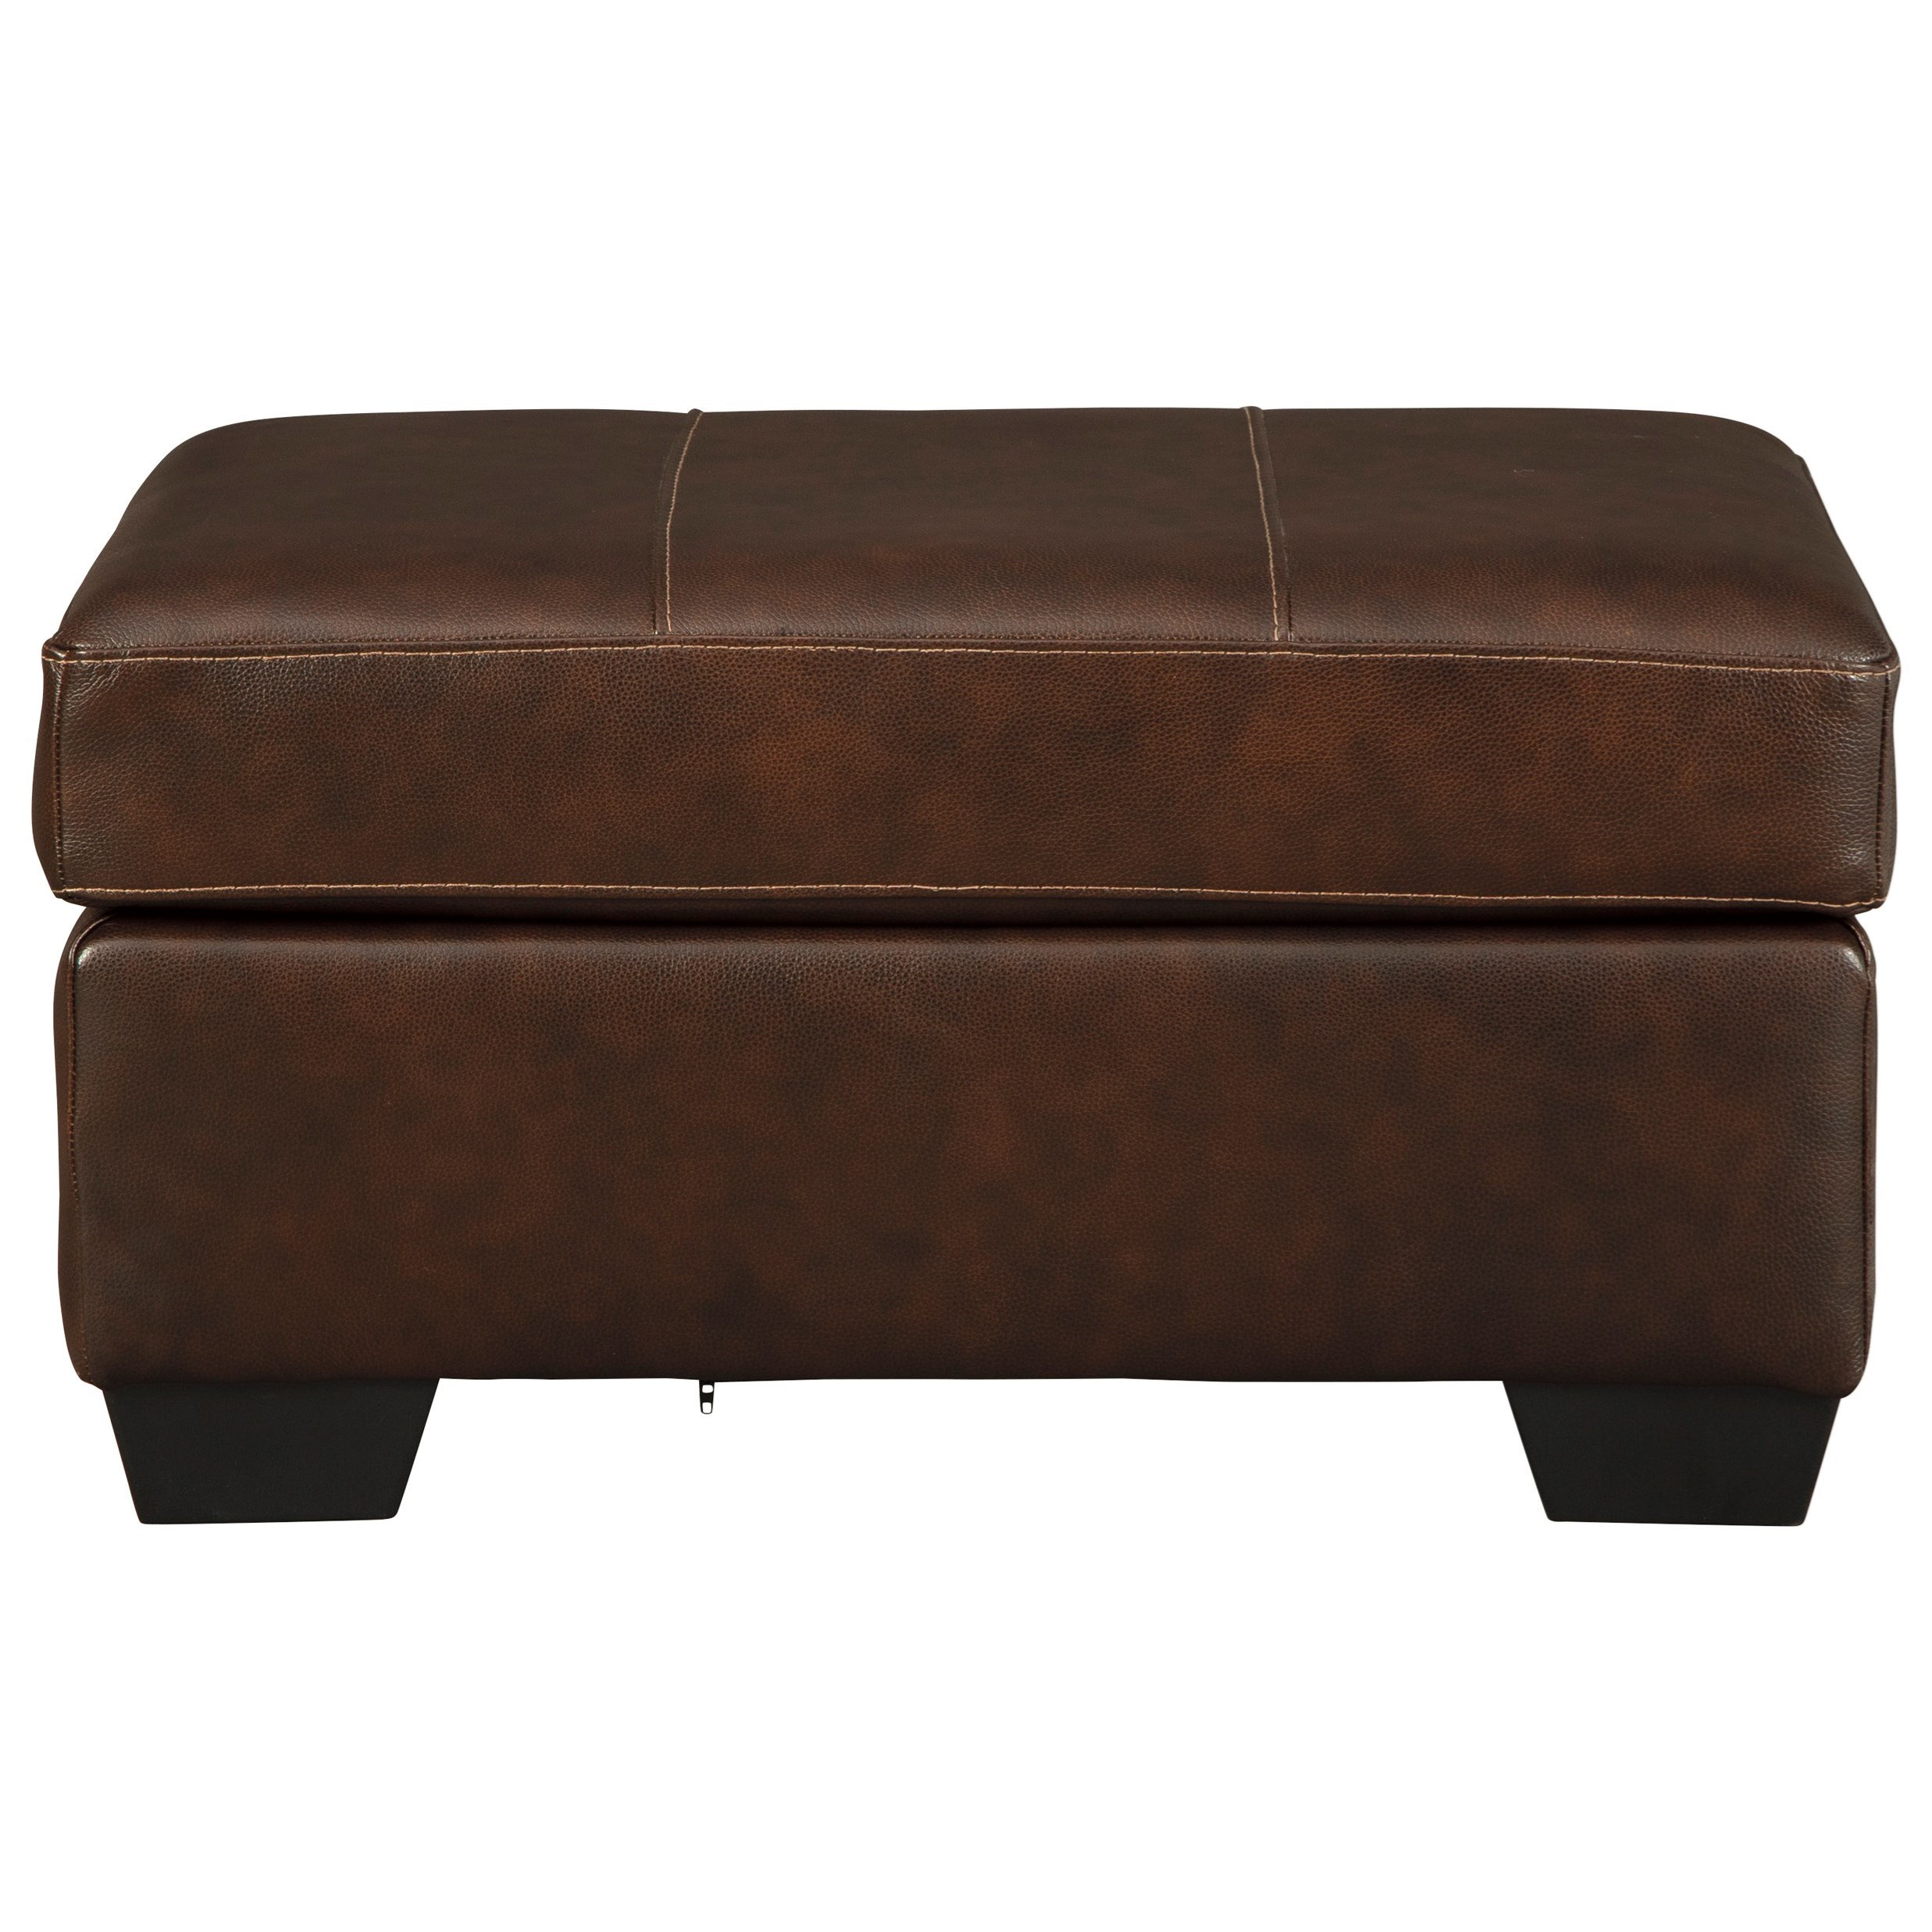 Morelos Ottoman by Signature Design by Ashley at Northeast Factory Direct